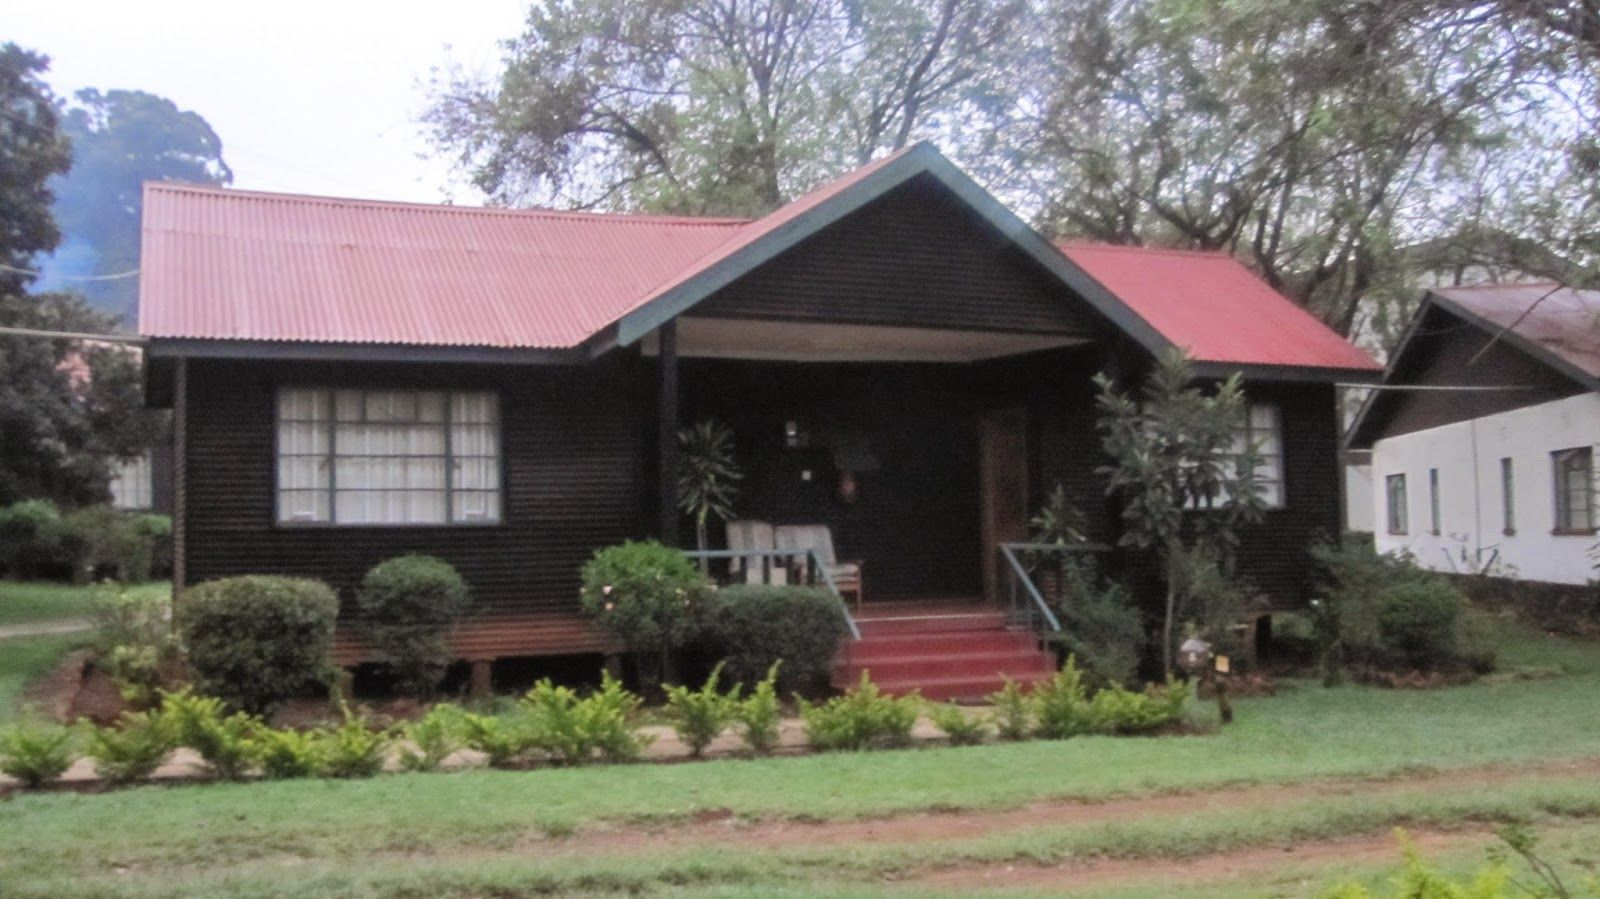 Guest house designs kenya google search